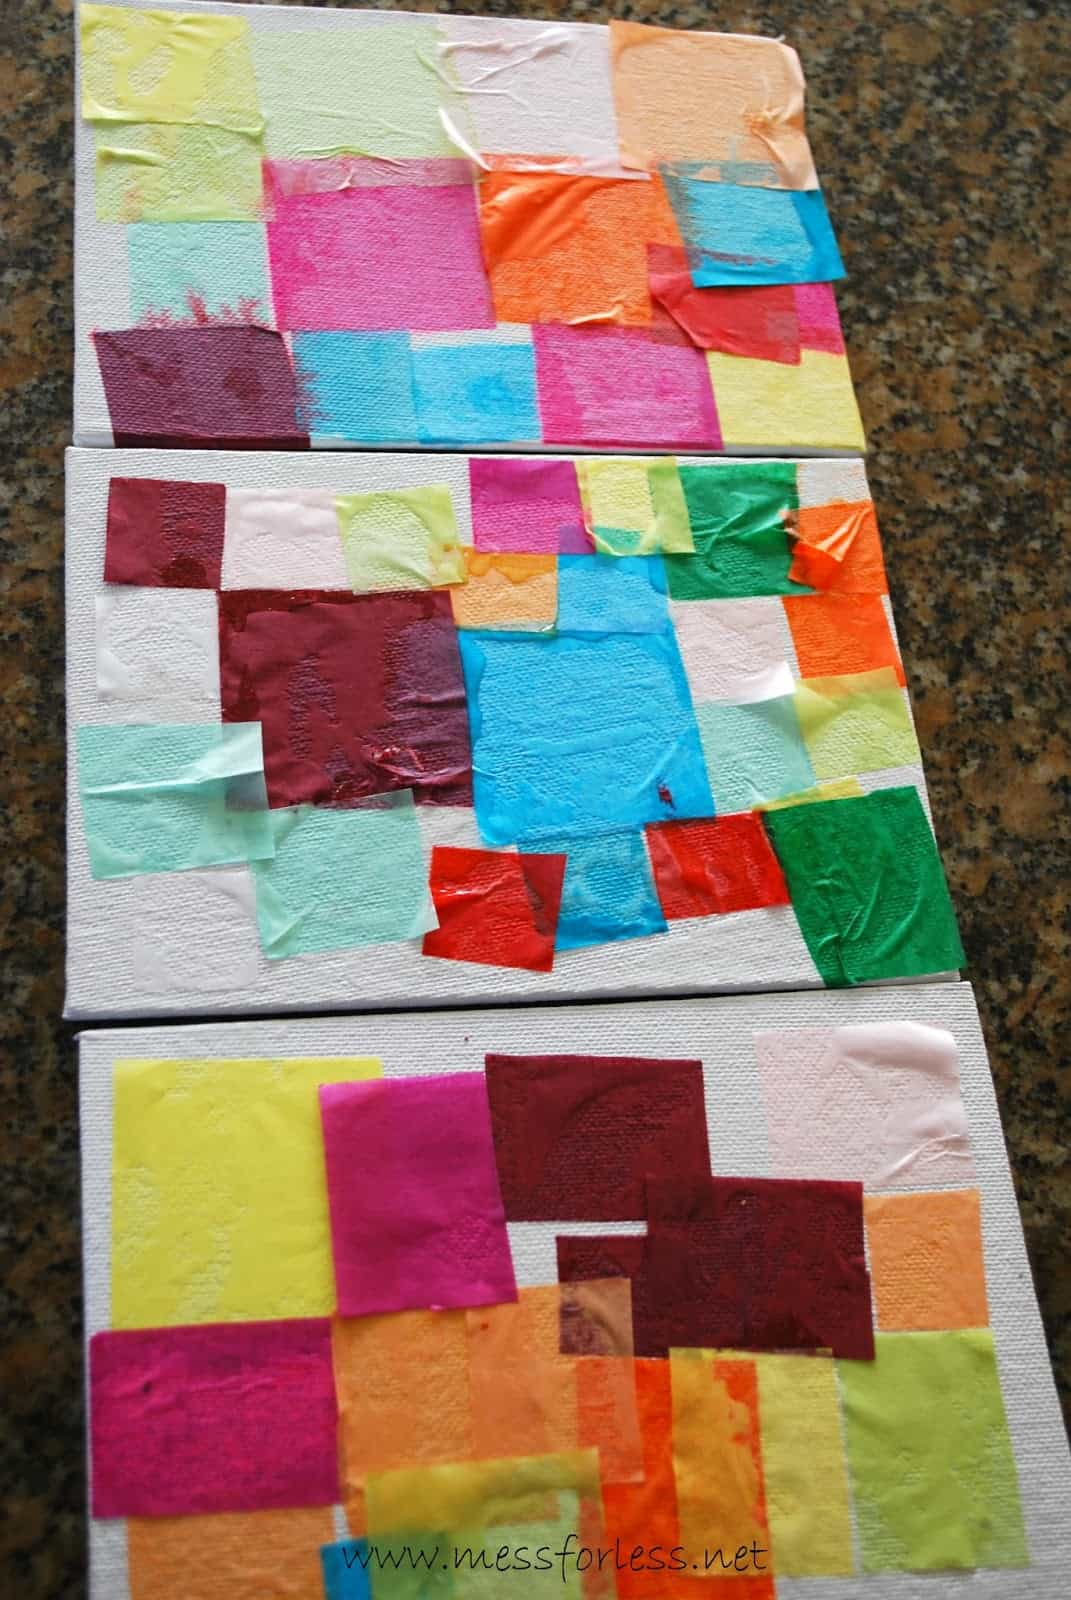 tissue paper squares Tissue paper flowers activities for mother's day - these flowers are made from folded tissue paper (crepe paper) you can make an entire bouquet of them for a great gift or decoration you can make an entire bouquet of them for a great gift or decoration.